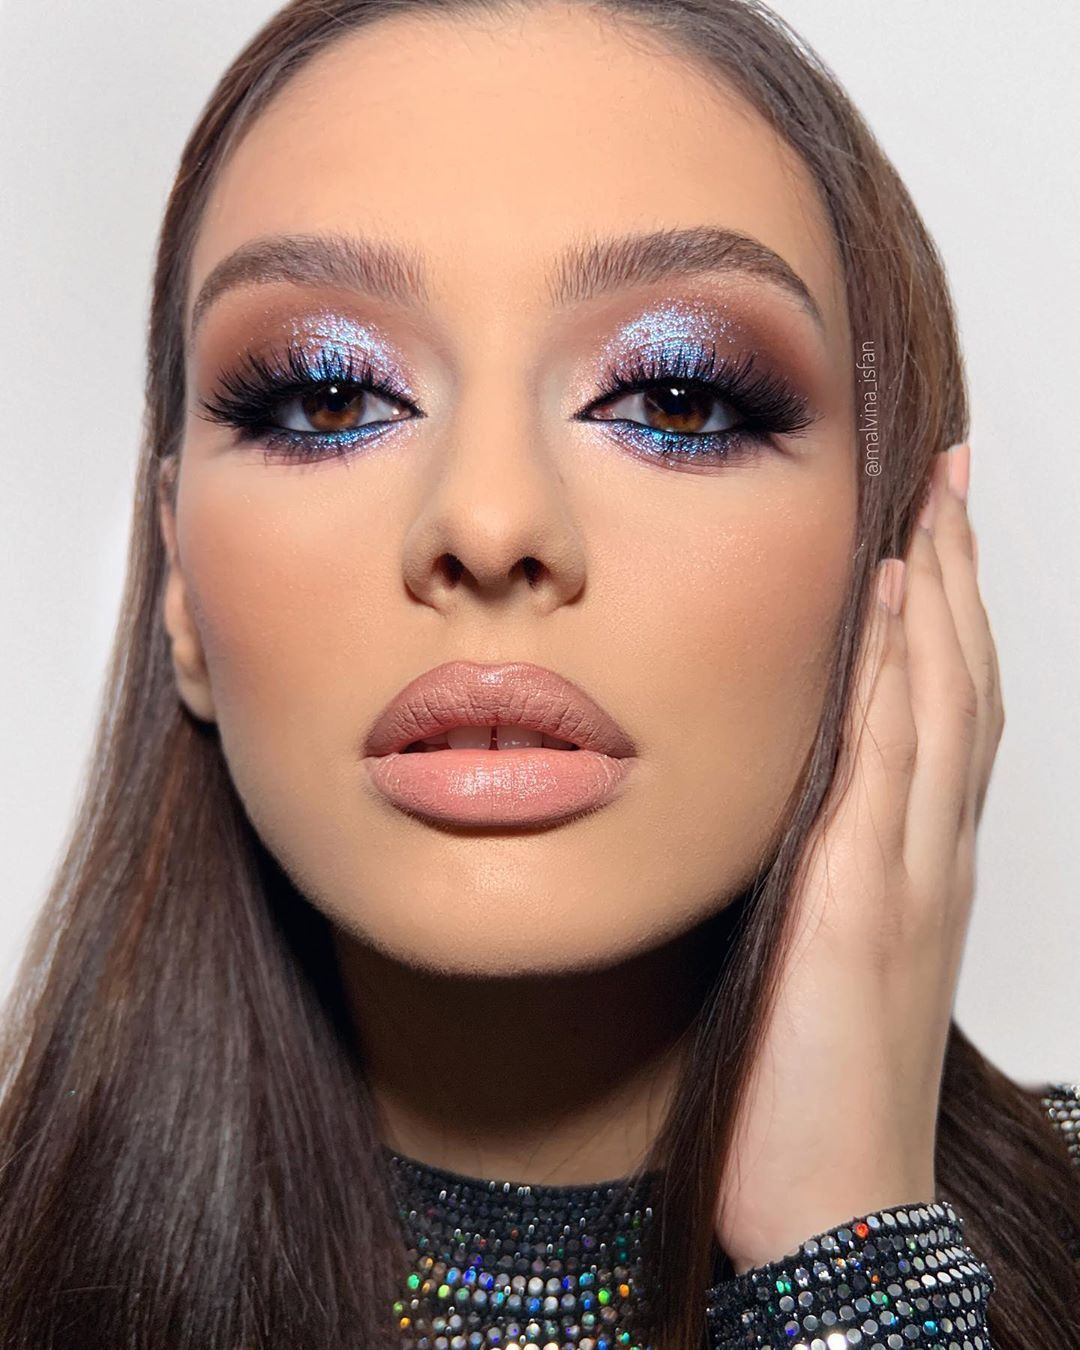 """Malvina Ișfan Makeup Artist on Instagram: """"I am completely moved by a beautiful blue so I always enjoy doing blue makeup looks. Sometimes girls feel intimidated by the idea but I…"""""""